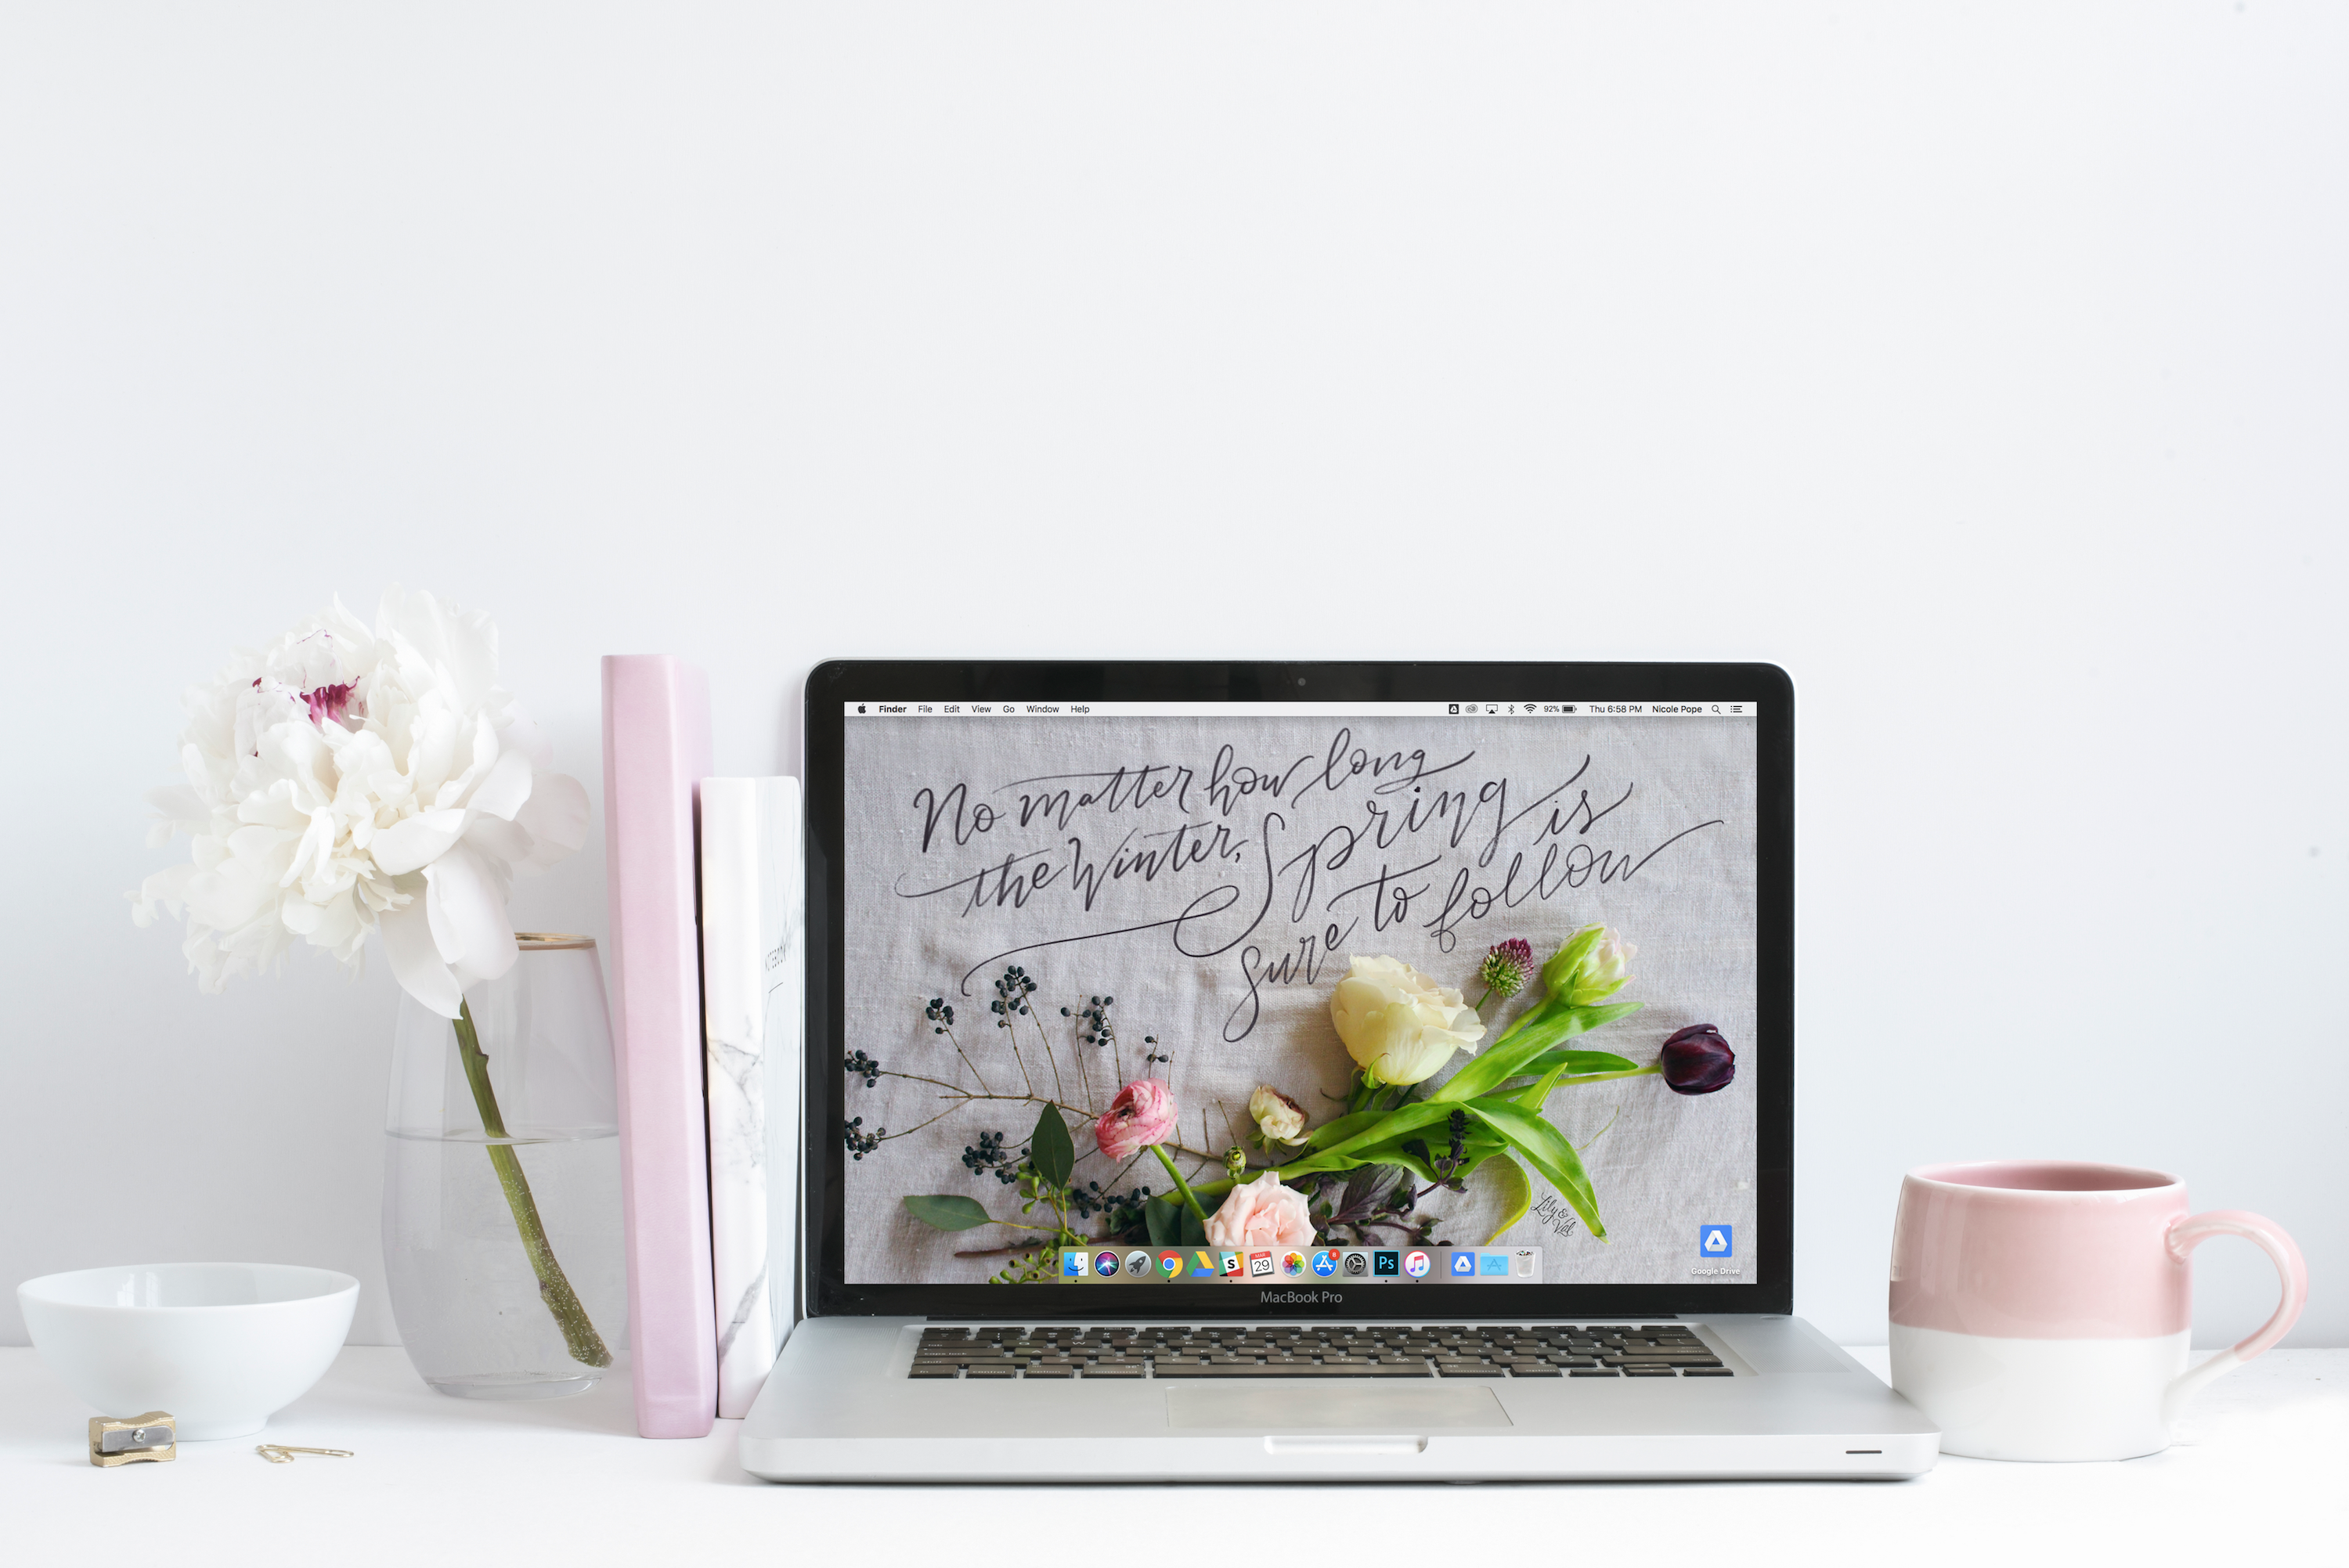 Free downloadable April Desktop background with hand-lettering and live flowers